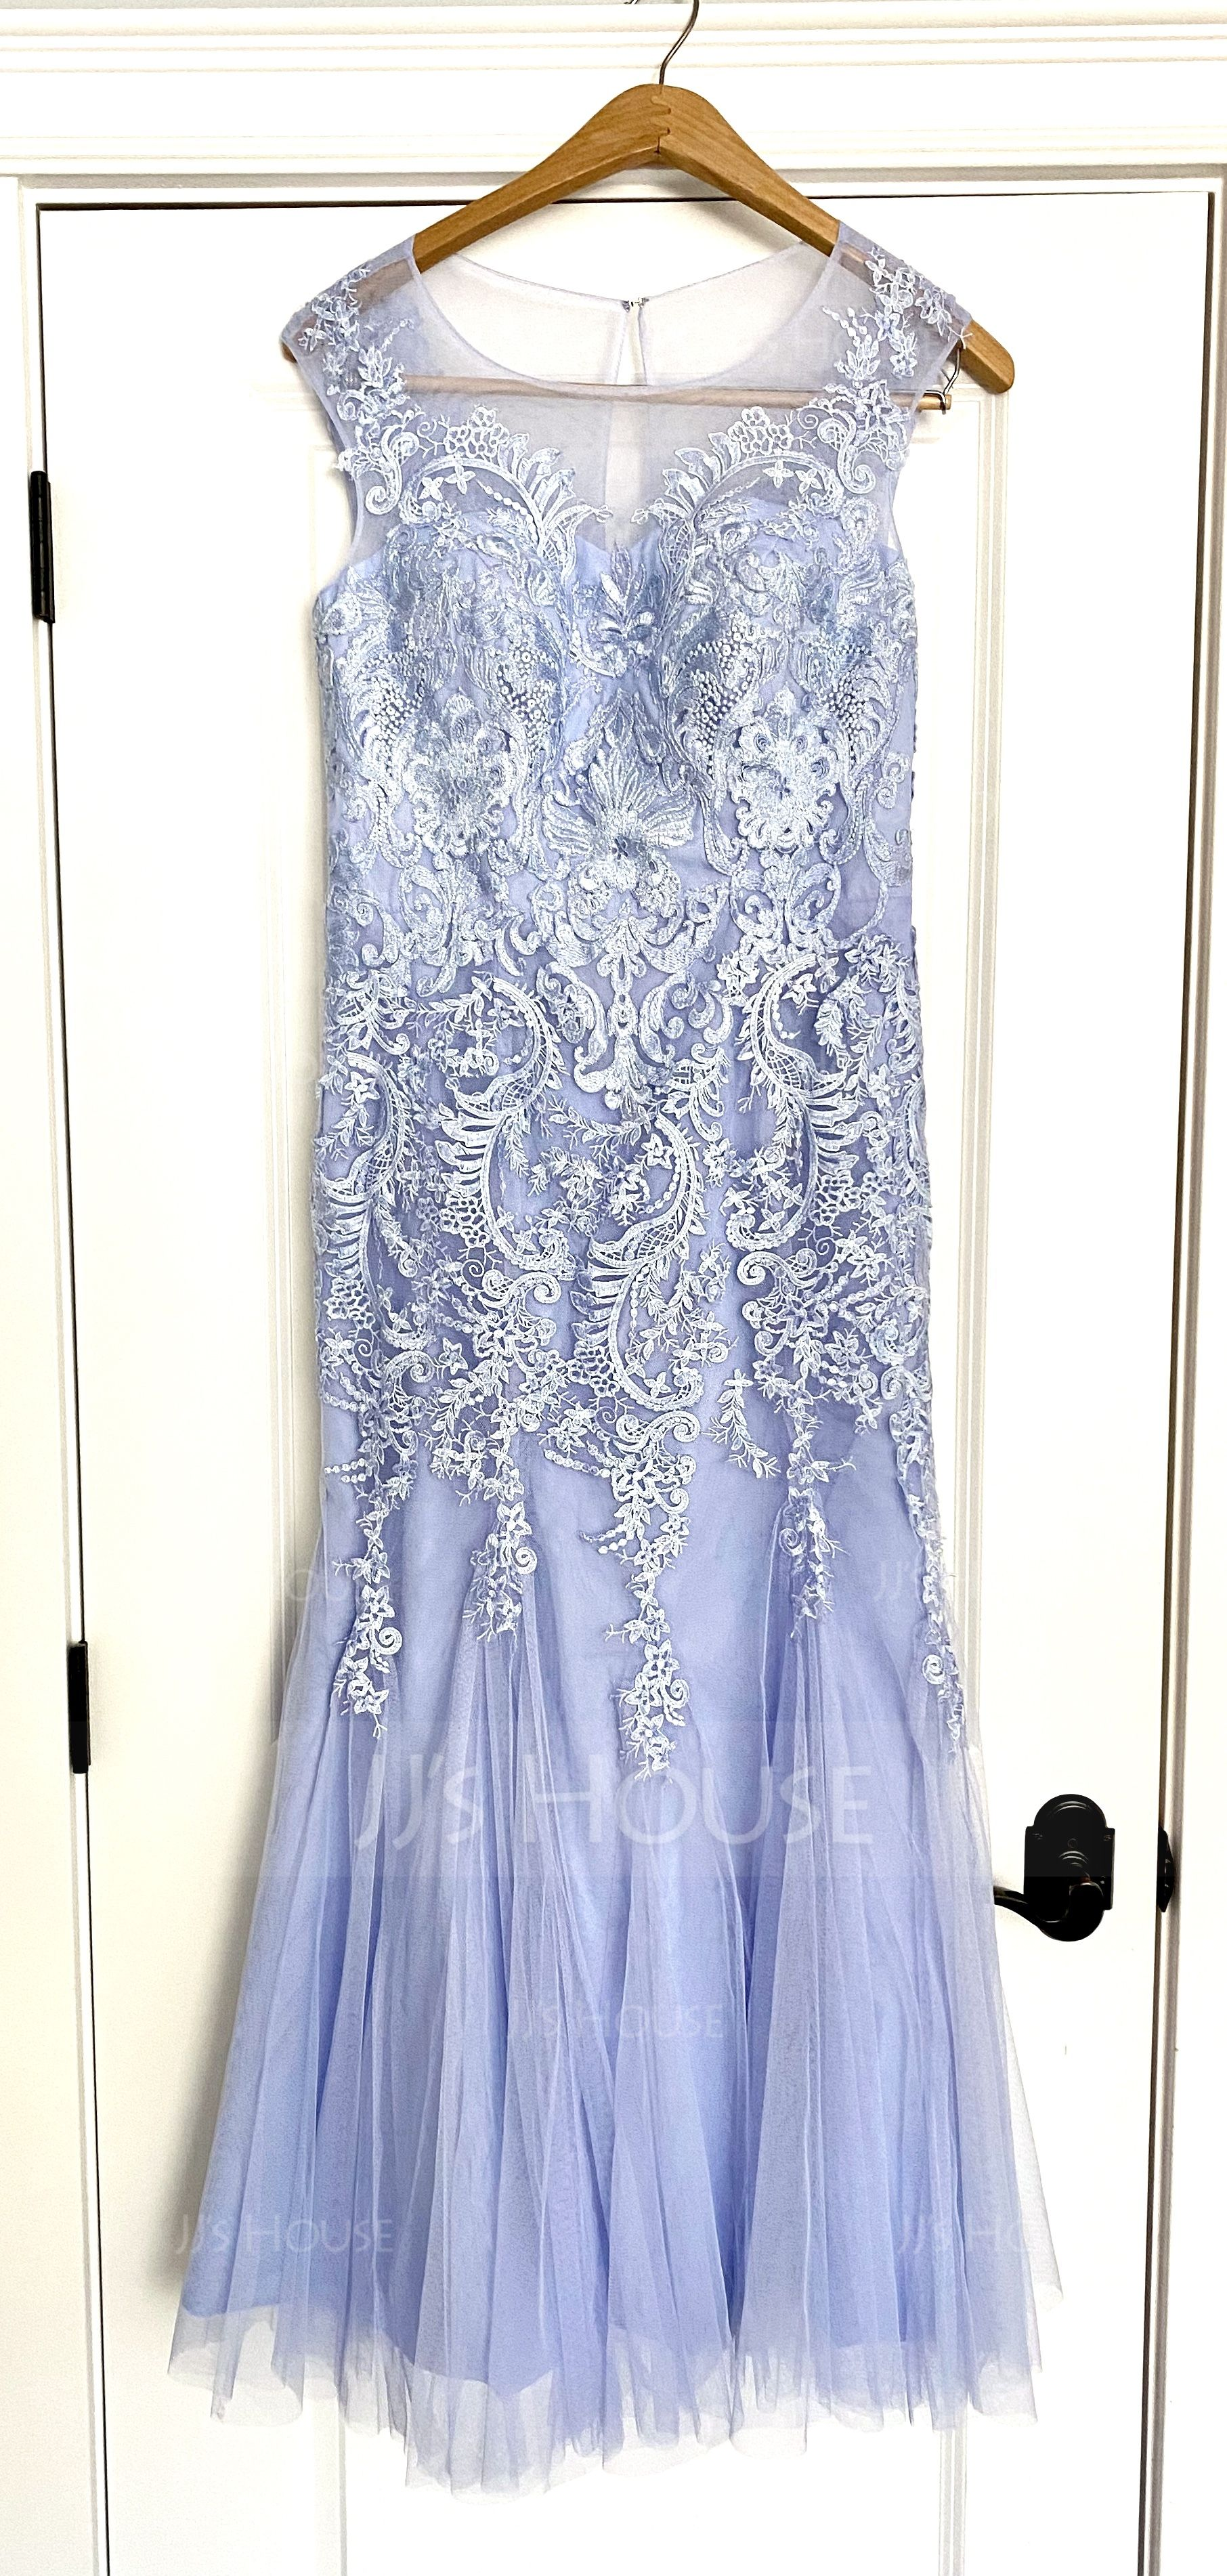 Trumpet/Mermaid Scoop Neck Floor-Length Tulle Lace Mother of the Bride Dress (267205452)